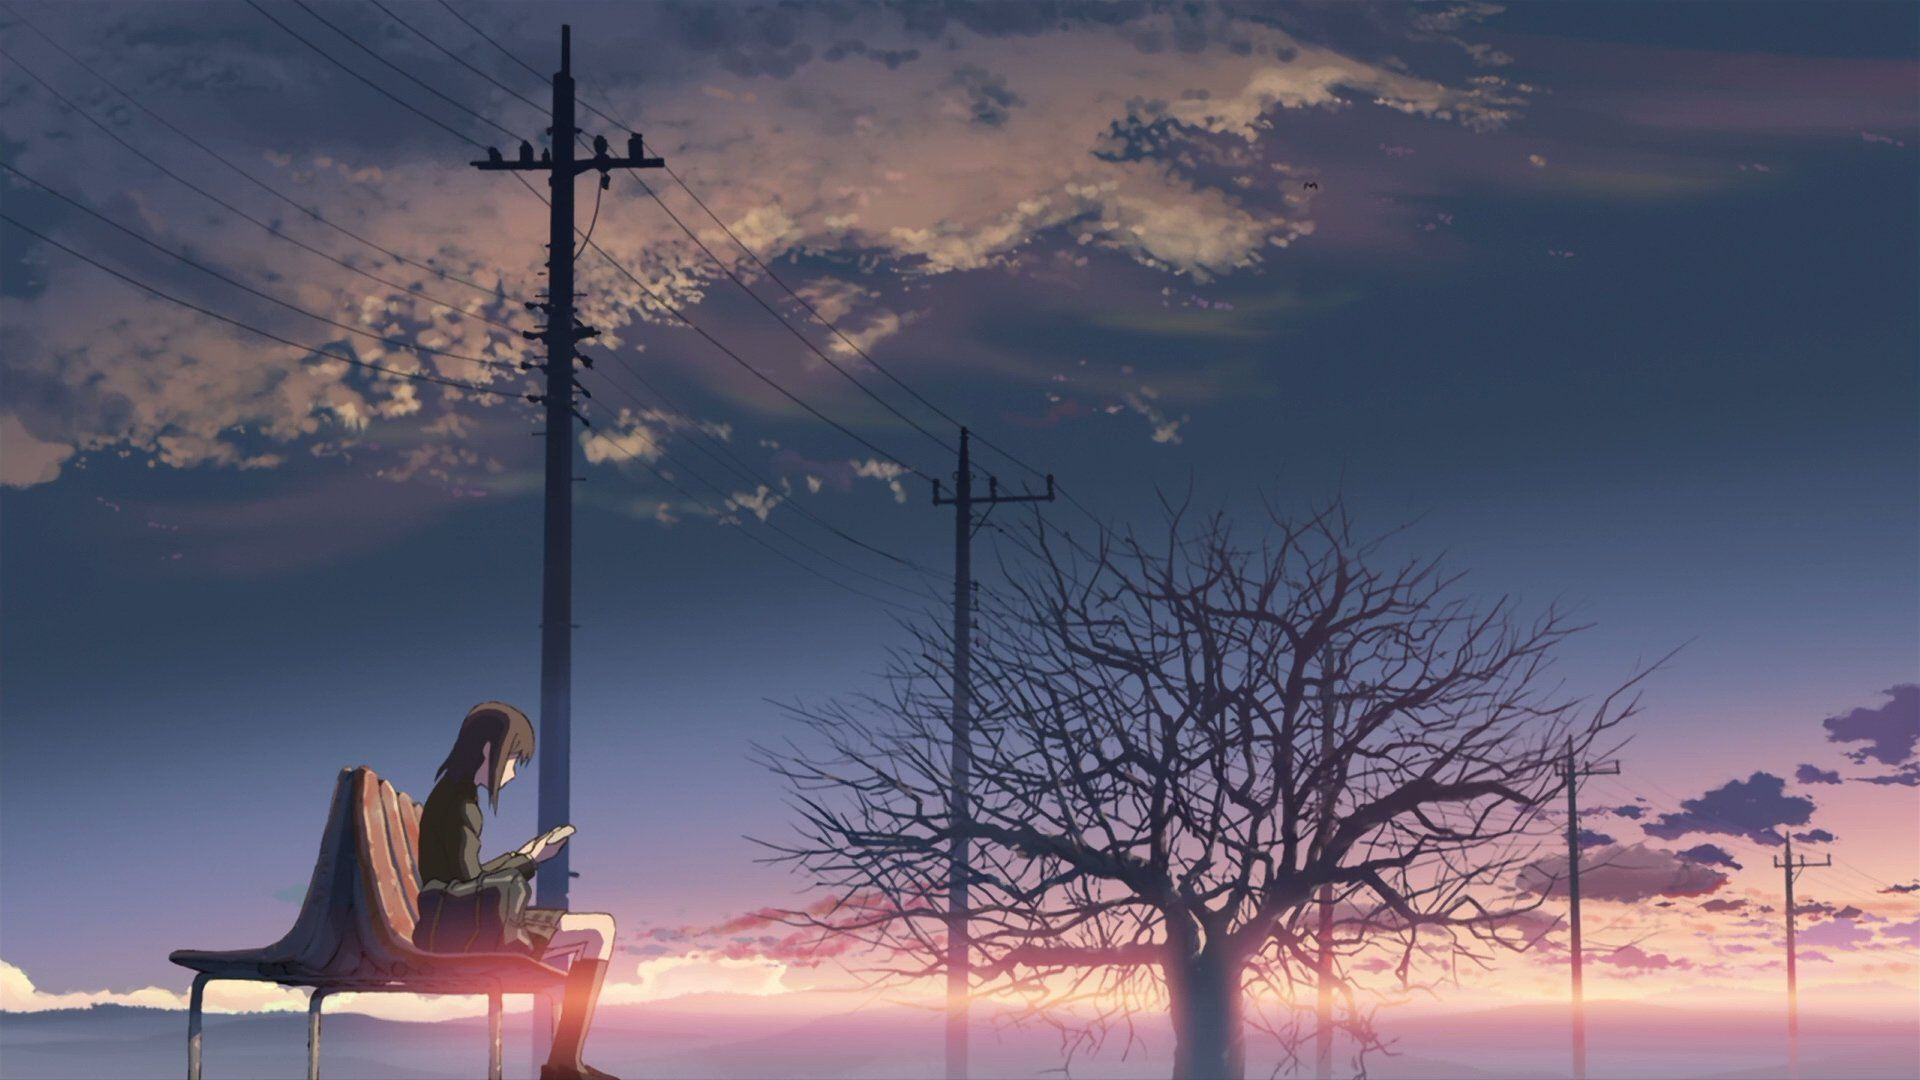 Shot from 5 Centimeters Per Second